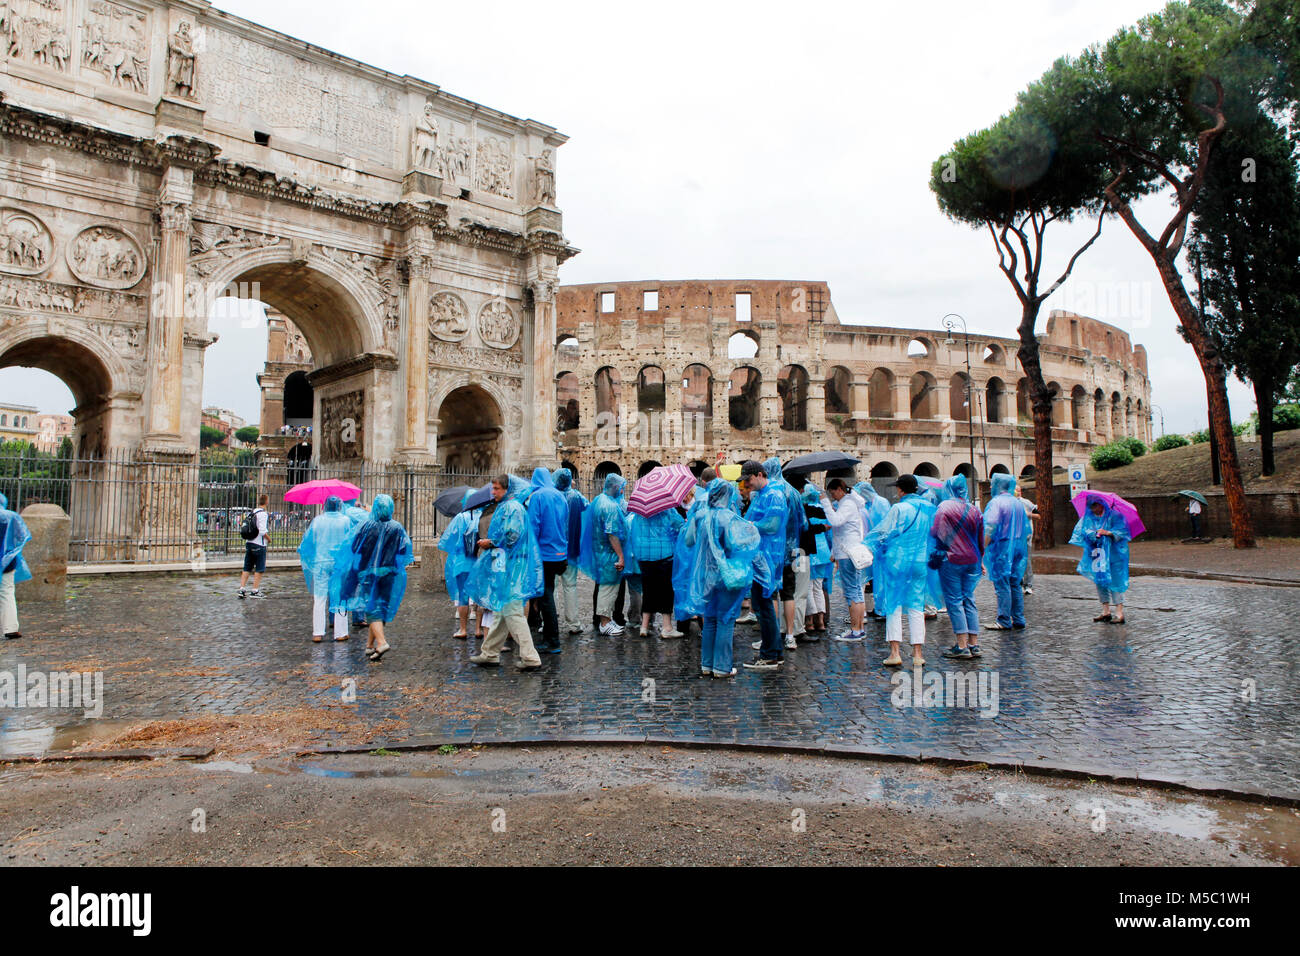 Tourists wearing ponchos in the rain at the Colosseum in Rome - Stock Image